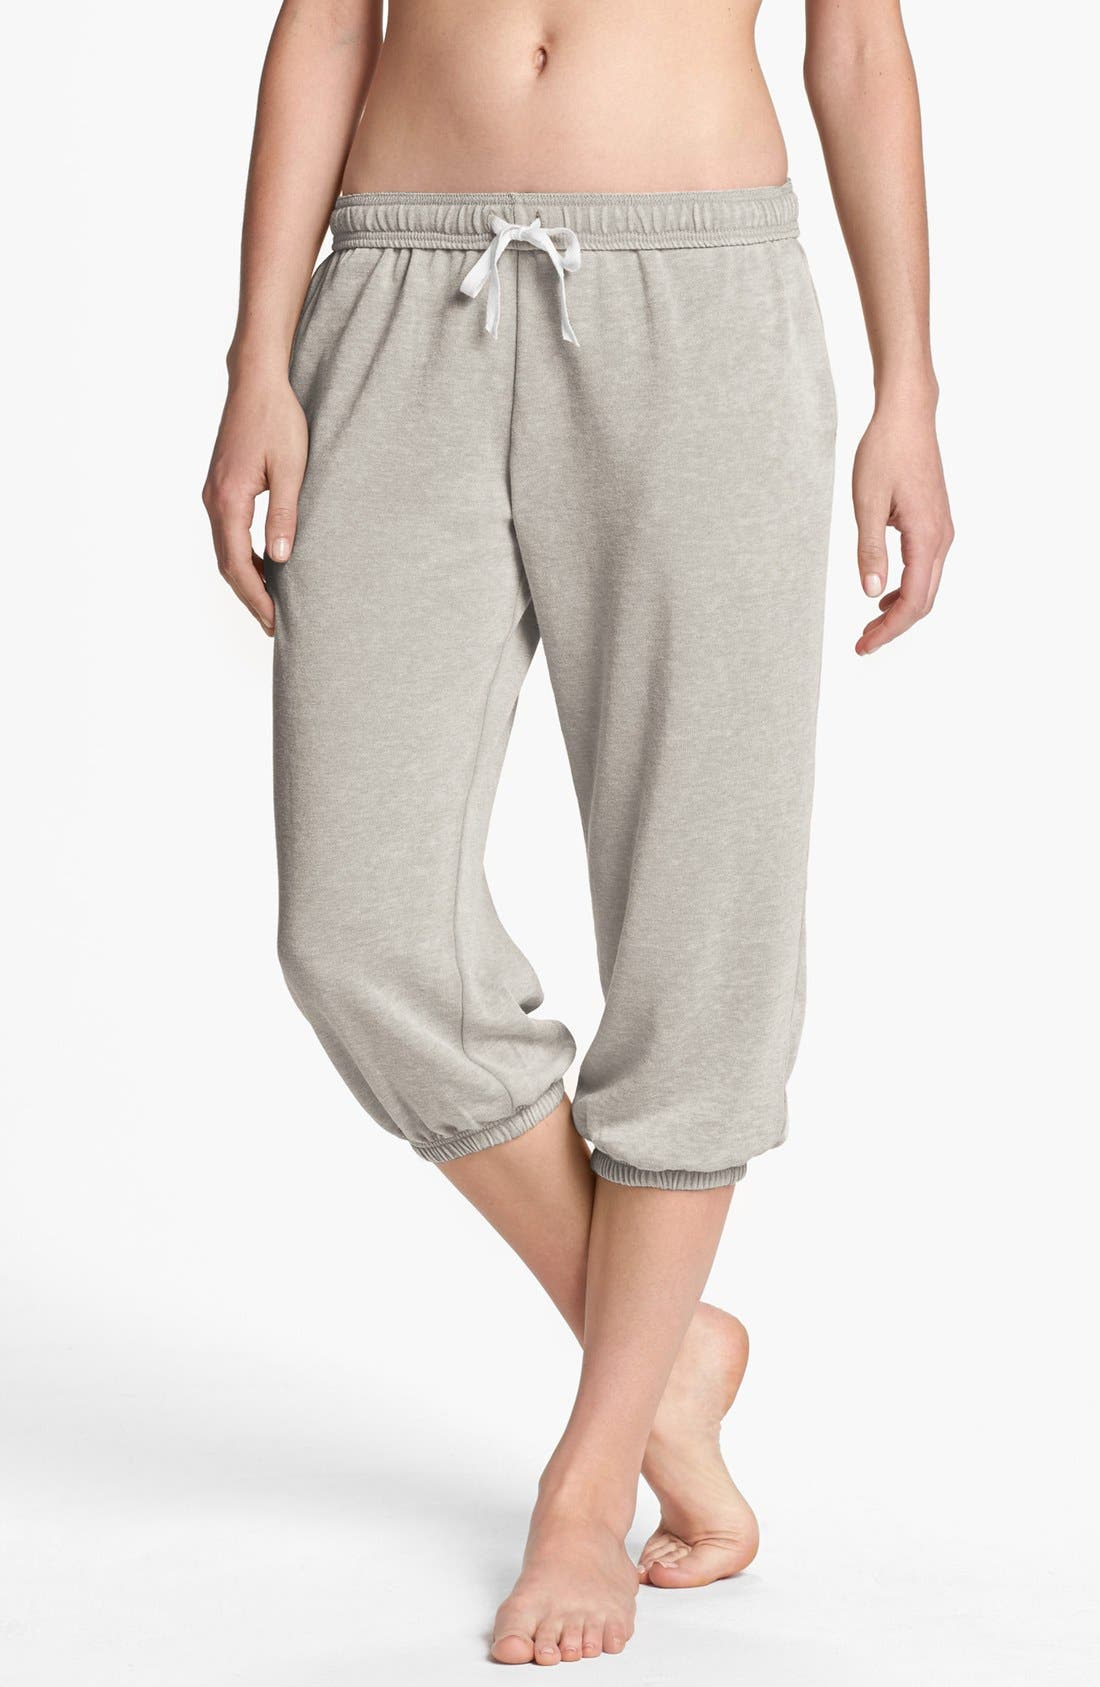 Alternate Image 1 Selected - BP. Undercover 'Gym Class' Crop Sweatpants (Juniors)